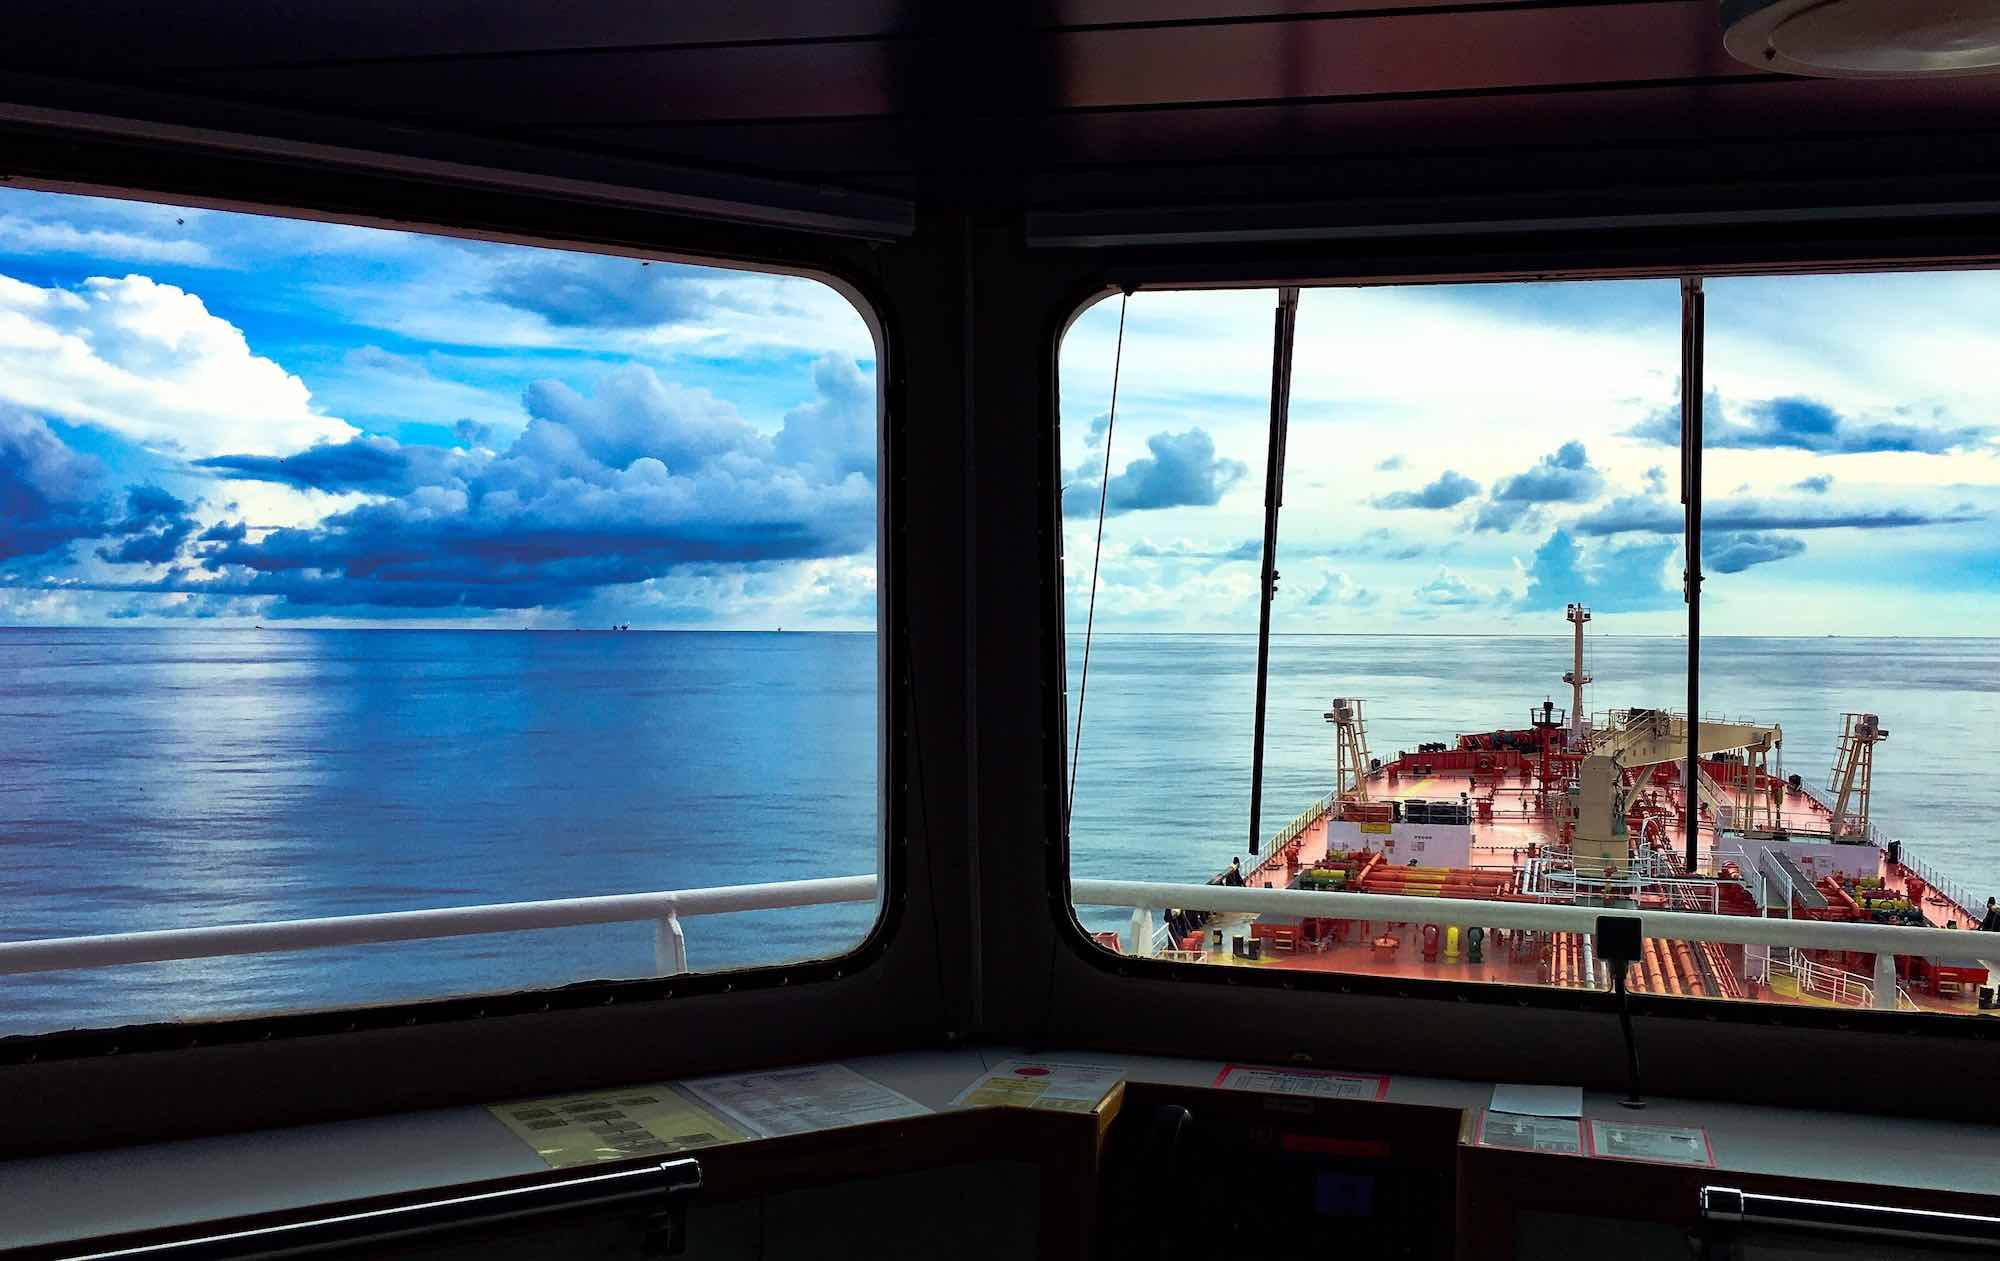 Cargo Shipping to Costa Rica? Important Information About Moving Overseas to Costa Rica